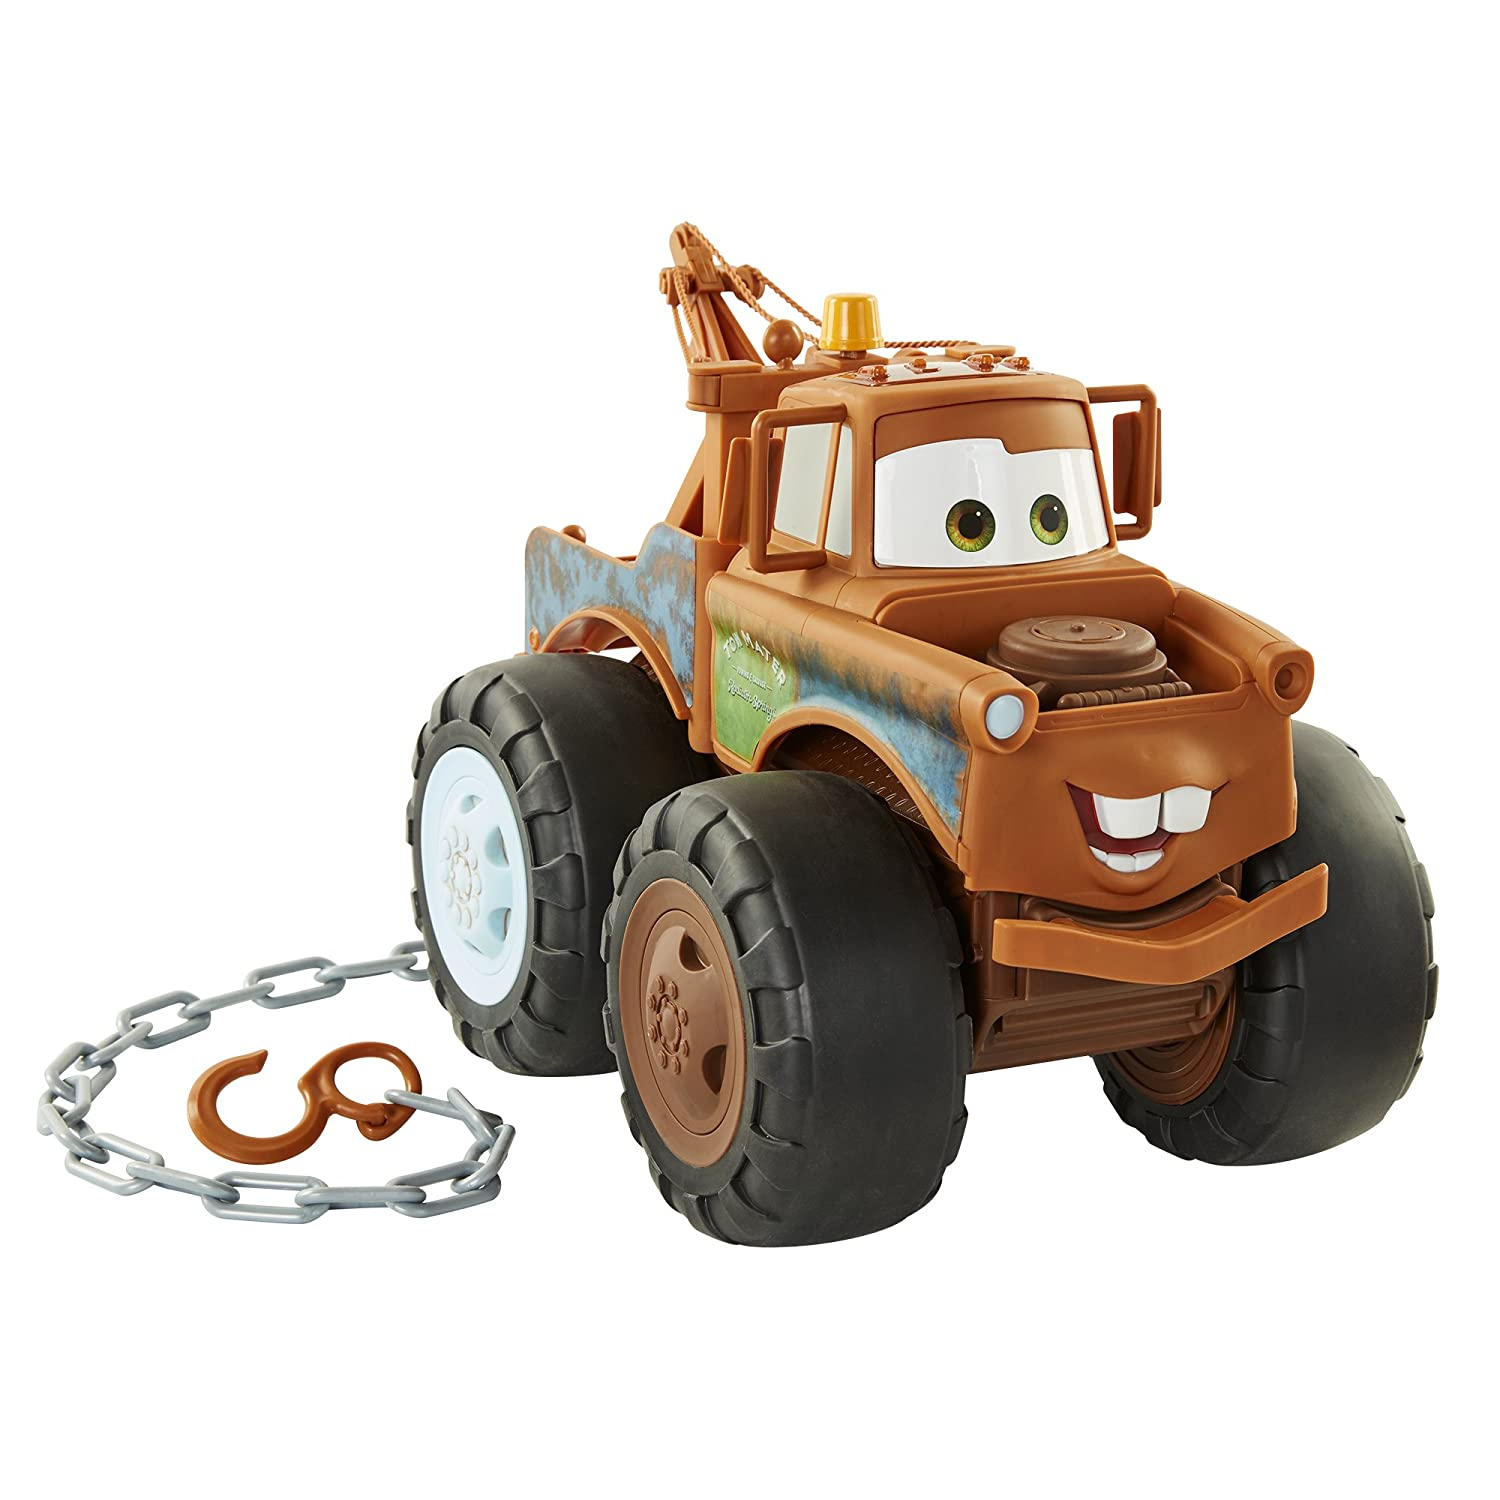 Disney Pixar Cars 3 Tow Mater Truck Push And Pull Up To